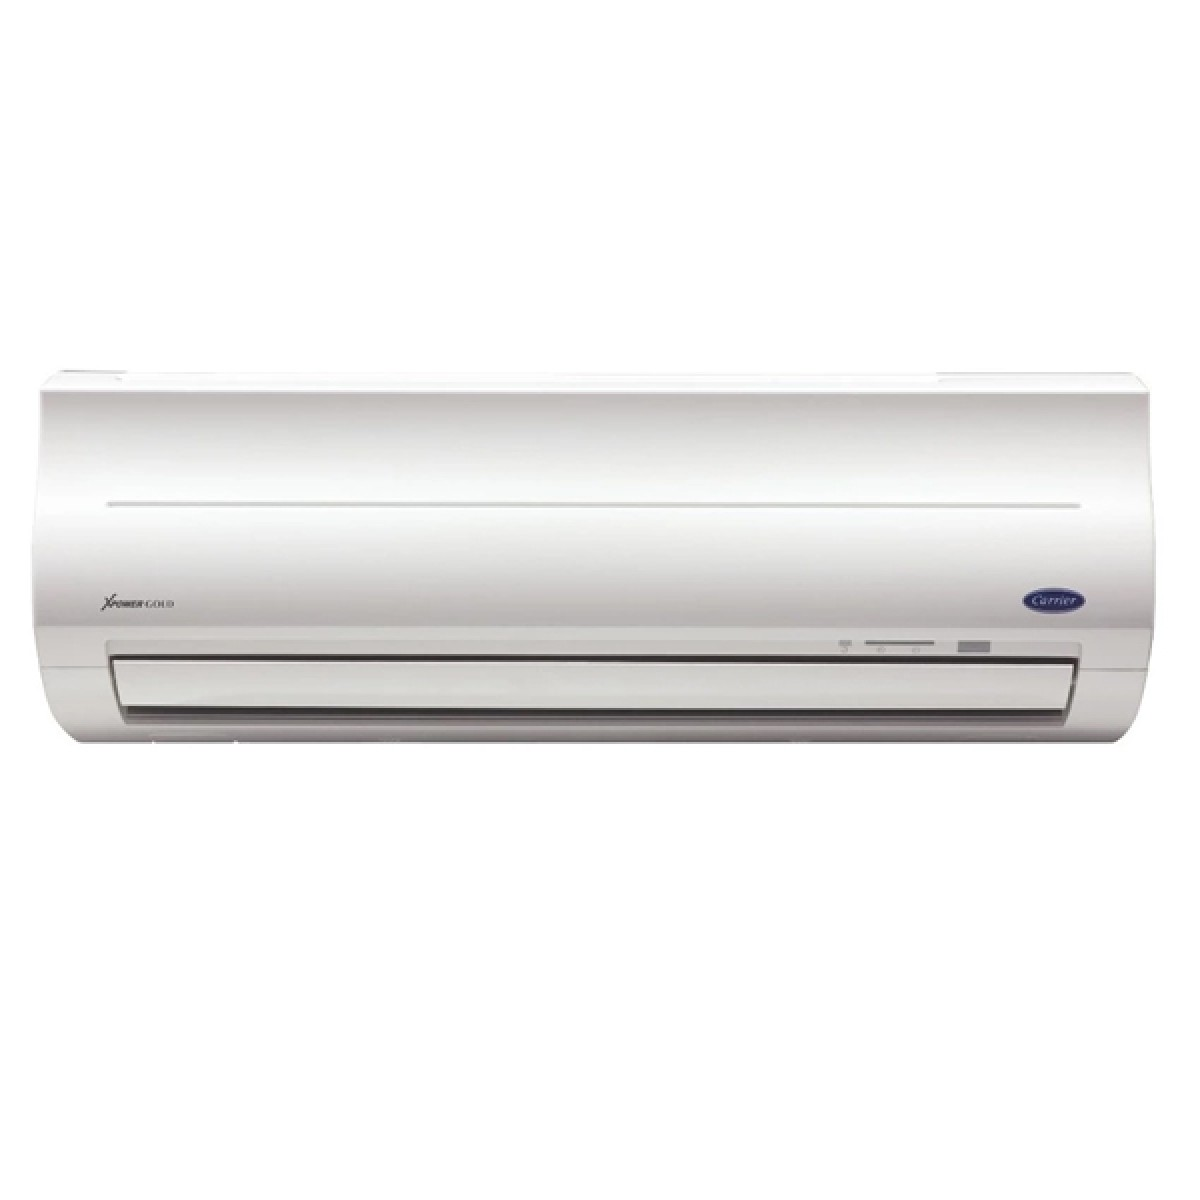 #434464 Carrier CVUR016 Inverter Split Type AC Robinsons Appliances Best 4823 Inverter Window Ac photos with 1200x1200 px on helpvideos.info - Air Conditioners, Air Coolers and more